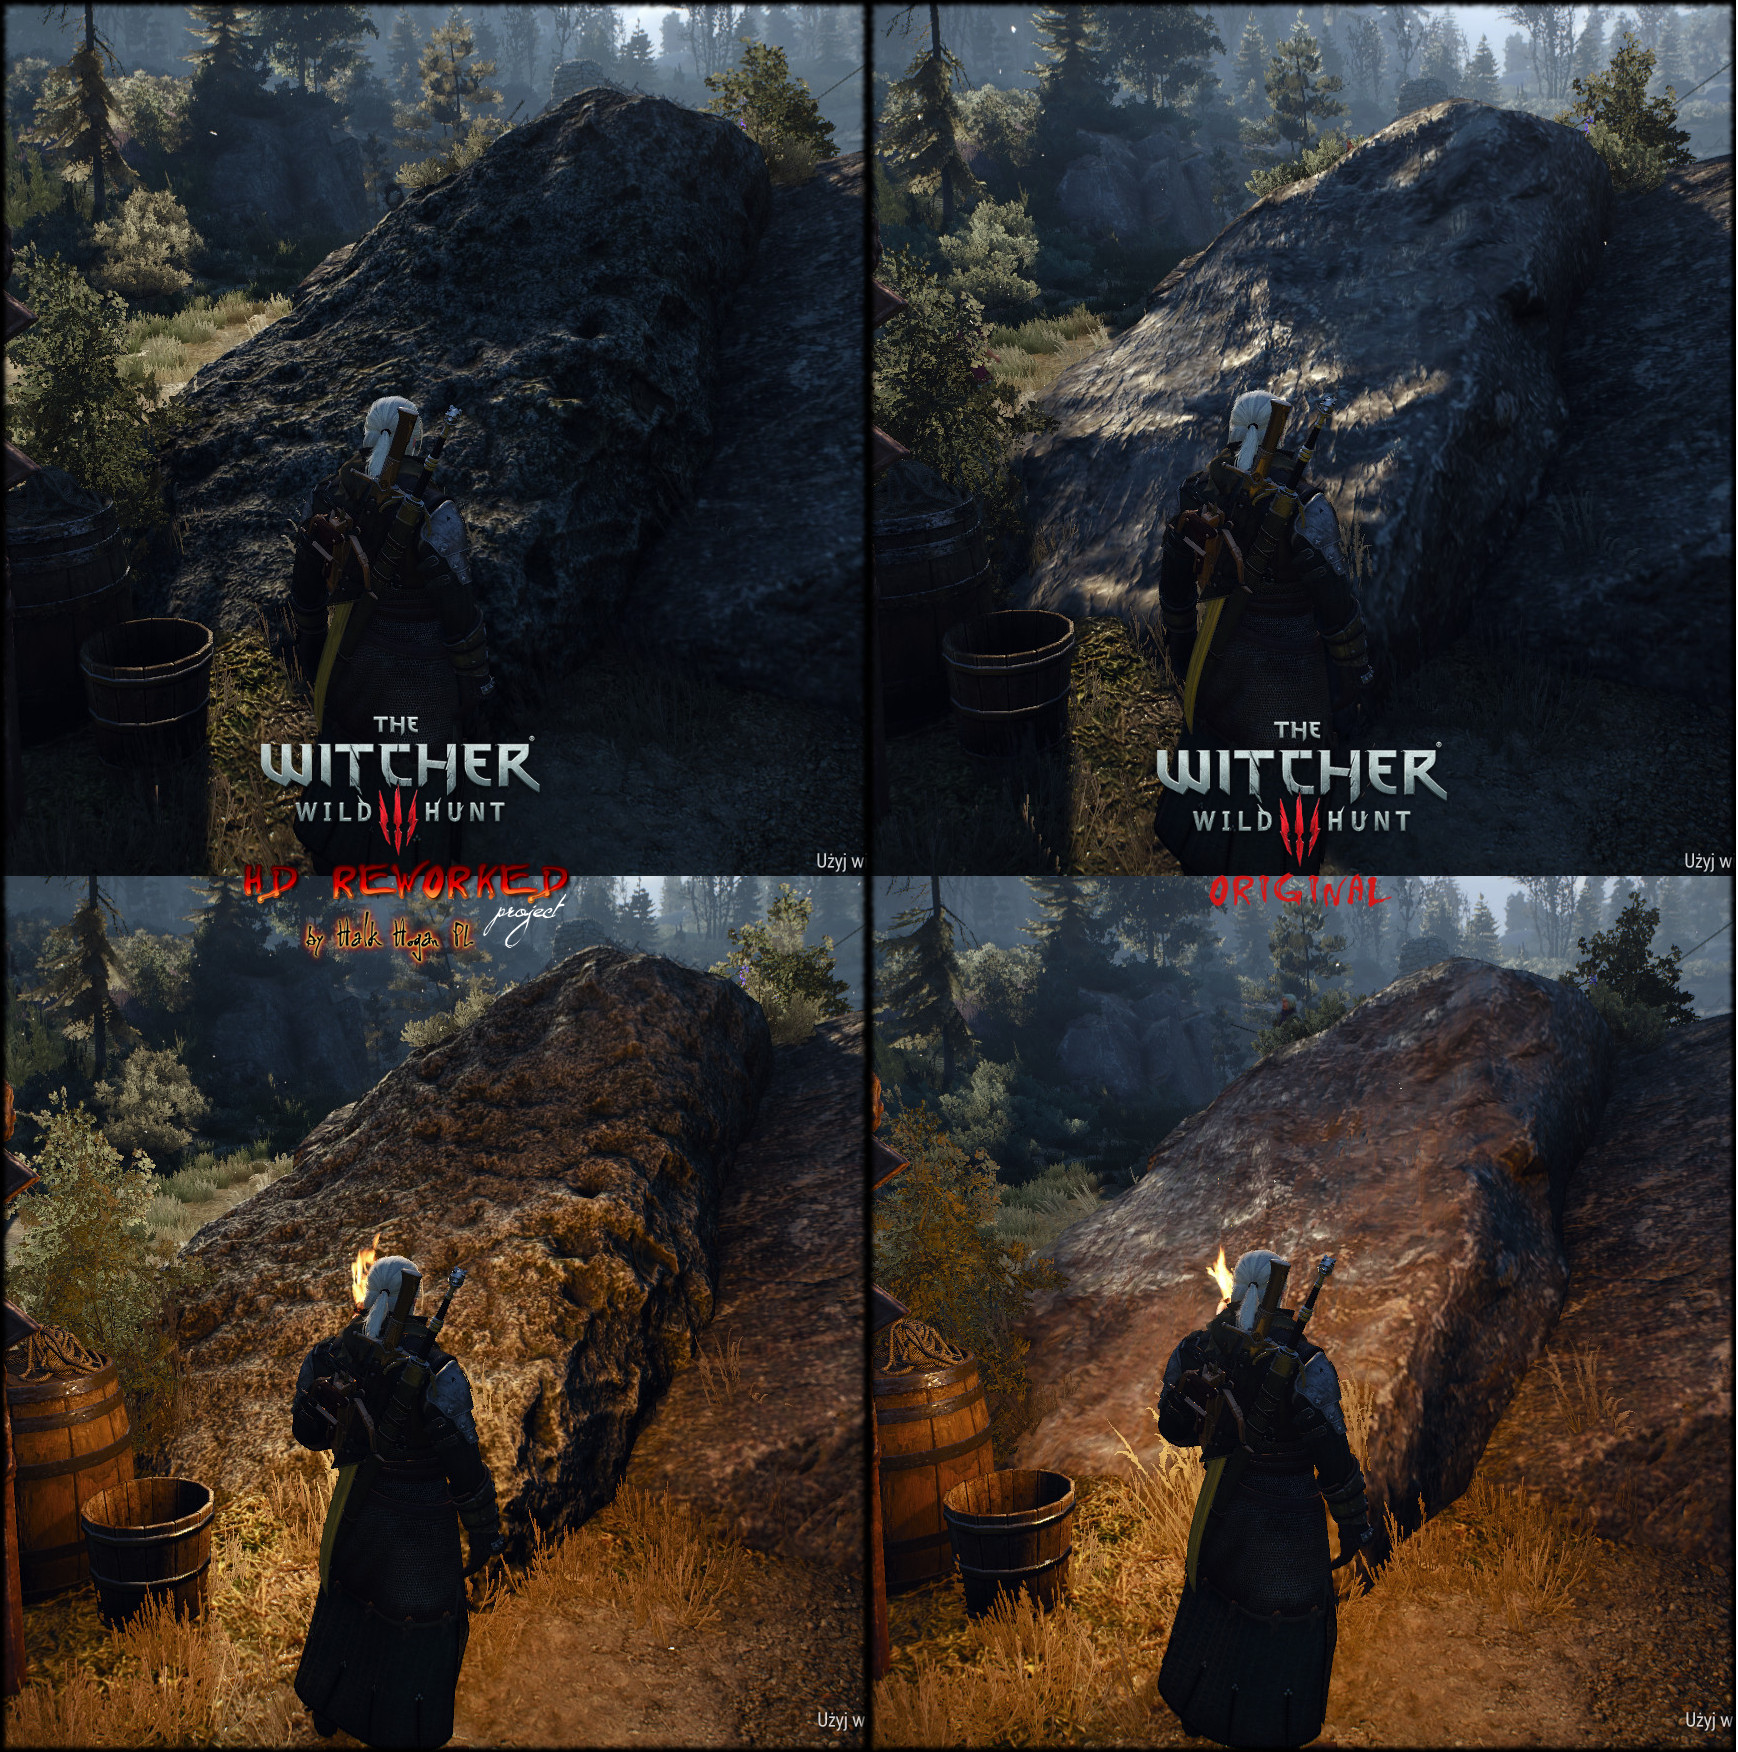 The Witcher 3: Wild Hunt High Res Texture mod 2 0 coming